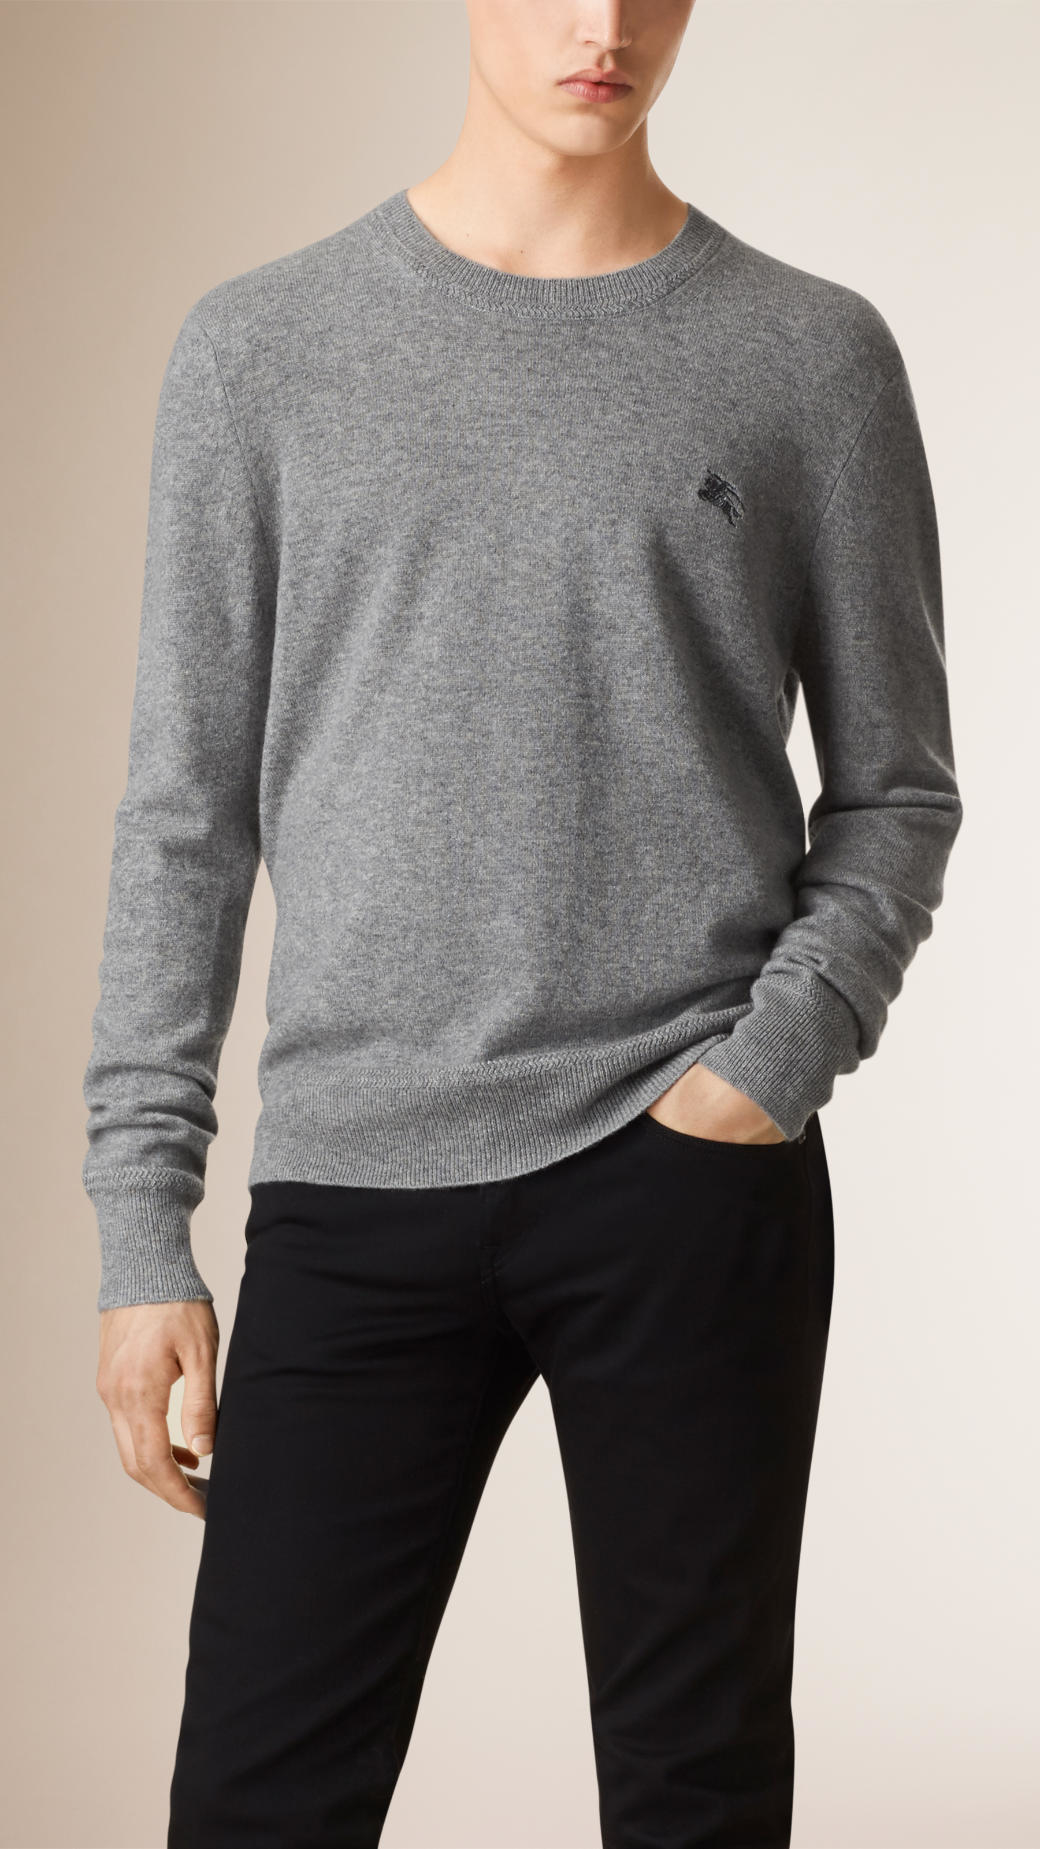 Burberry Crew Neck Cashmere Sweater Light Grey Melange in Gray for ...